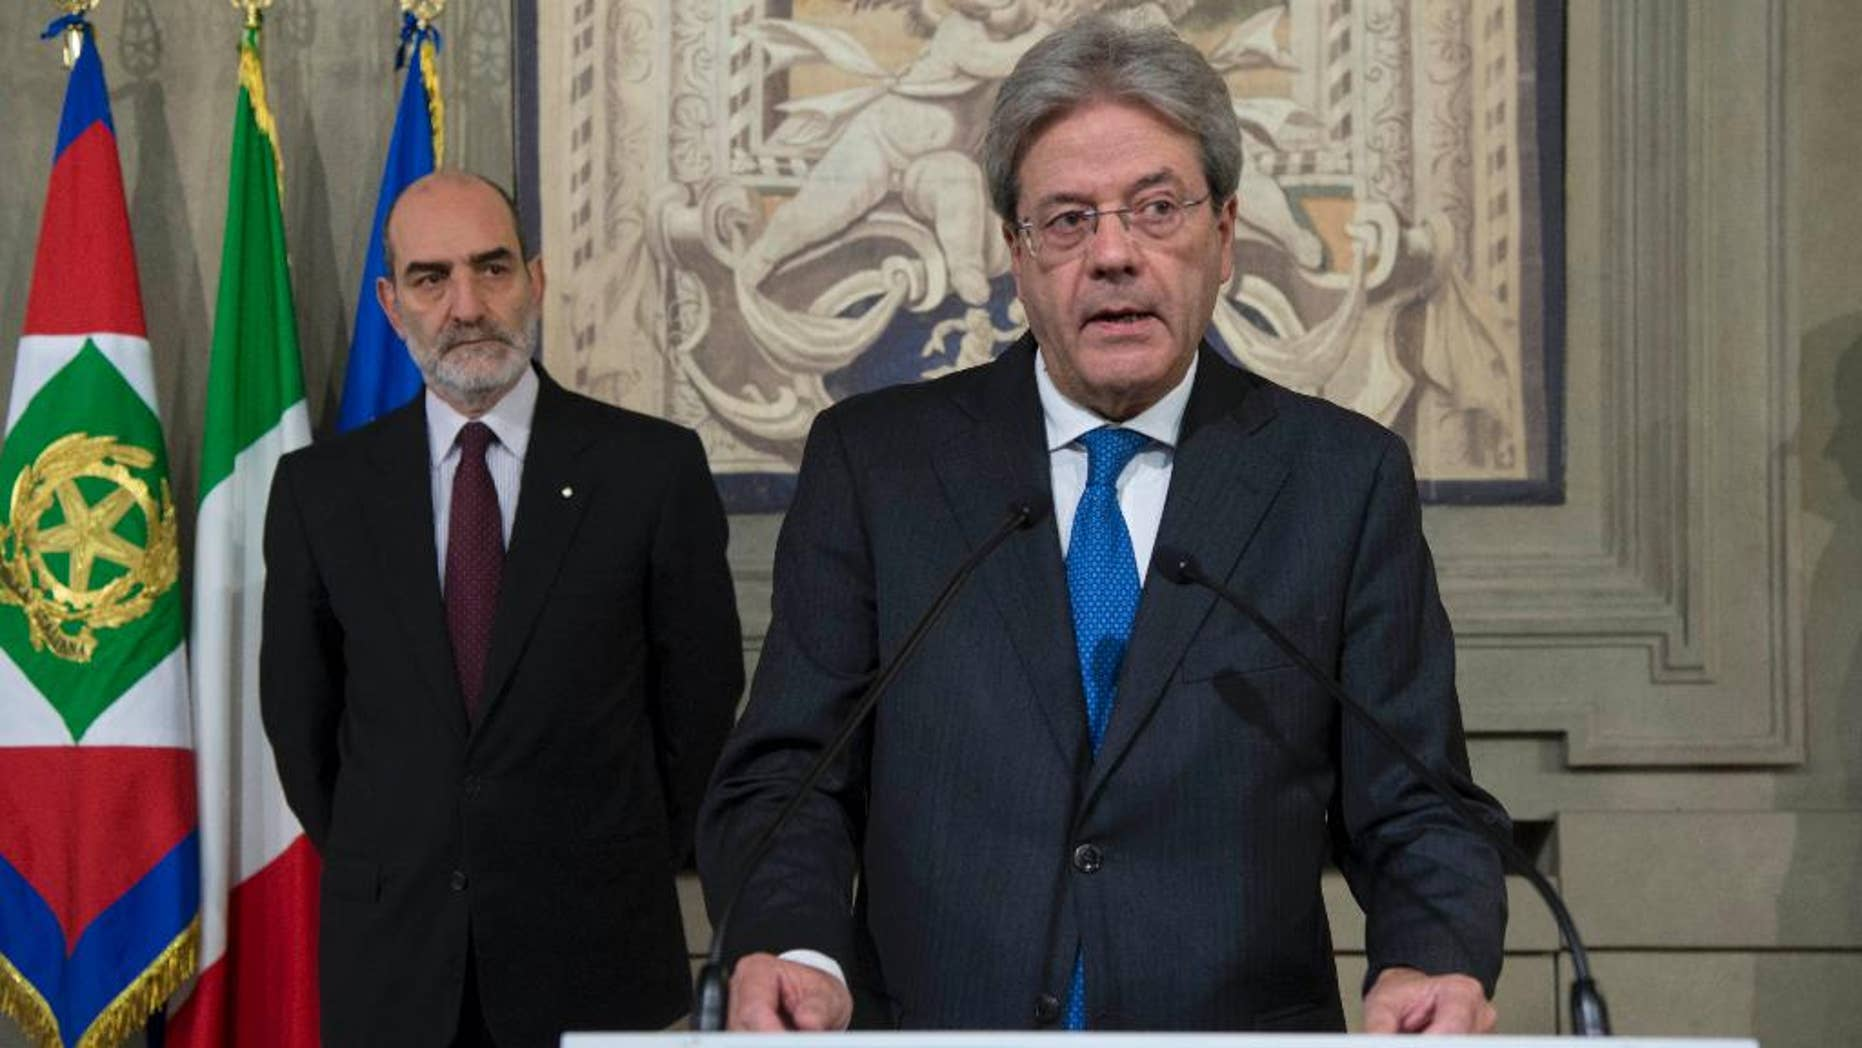 Paolo Gentiloni speaks at the Quirinale presidential palace, in Rome Sunday, Dec. 11, 2016. New Italian Premier-designate Paolo Gentiloni says he'll try to form Italy's new government as soon as possible. (Francesco Ammendola/Italian Presidency via AP)